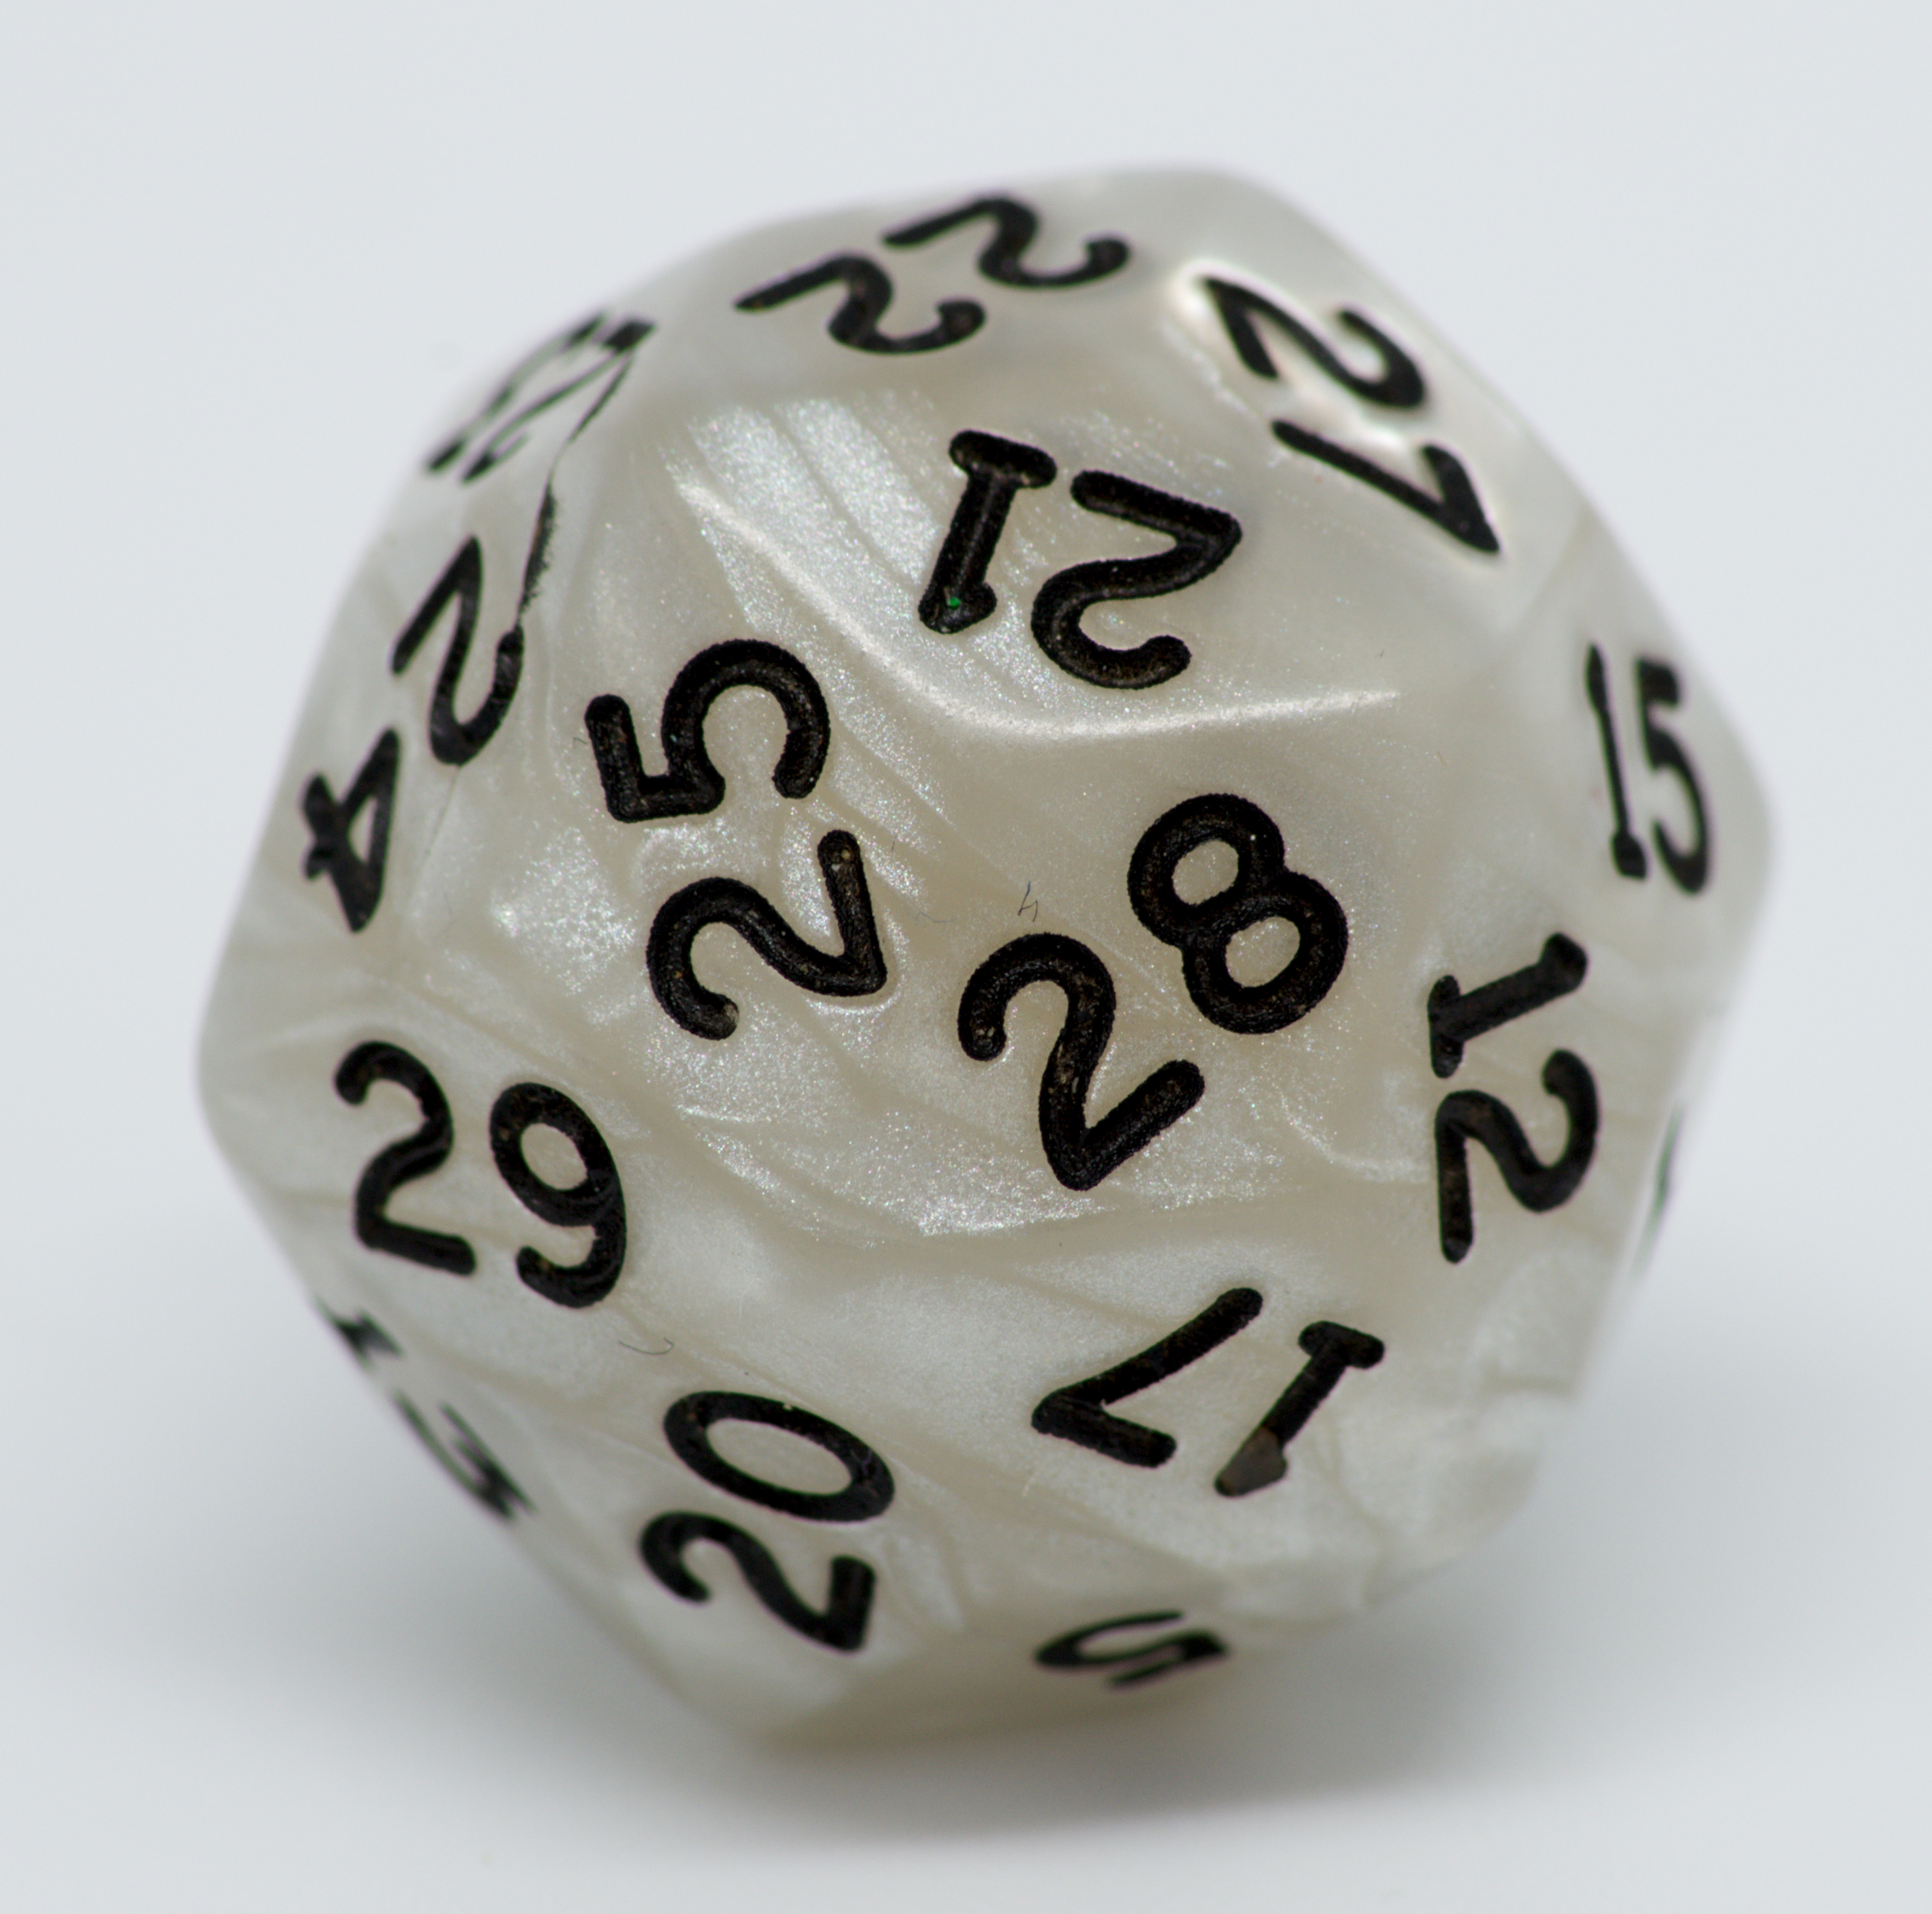 100 sided dice images to print